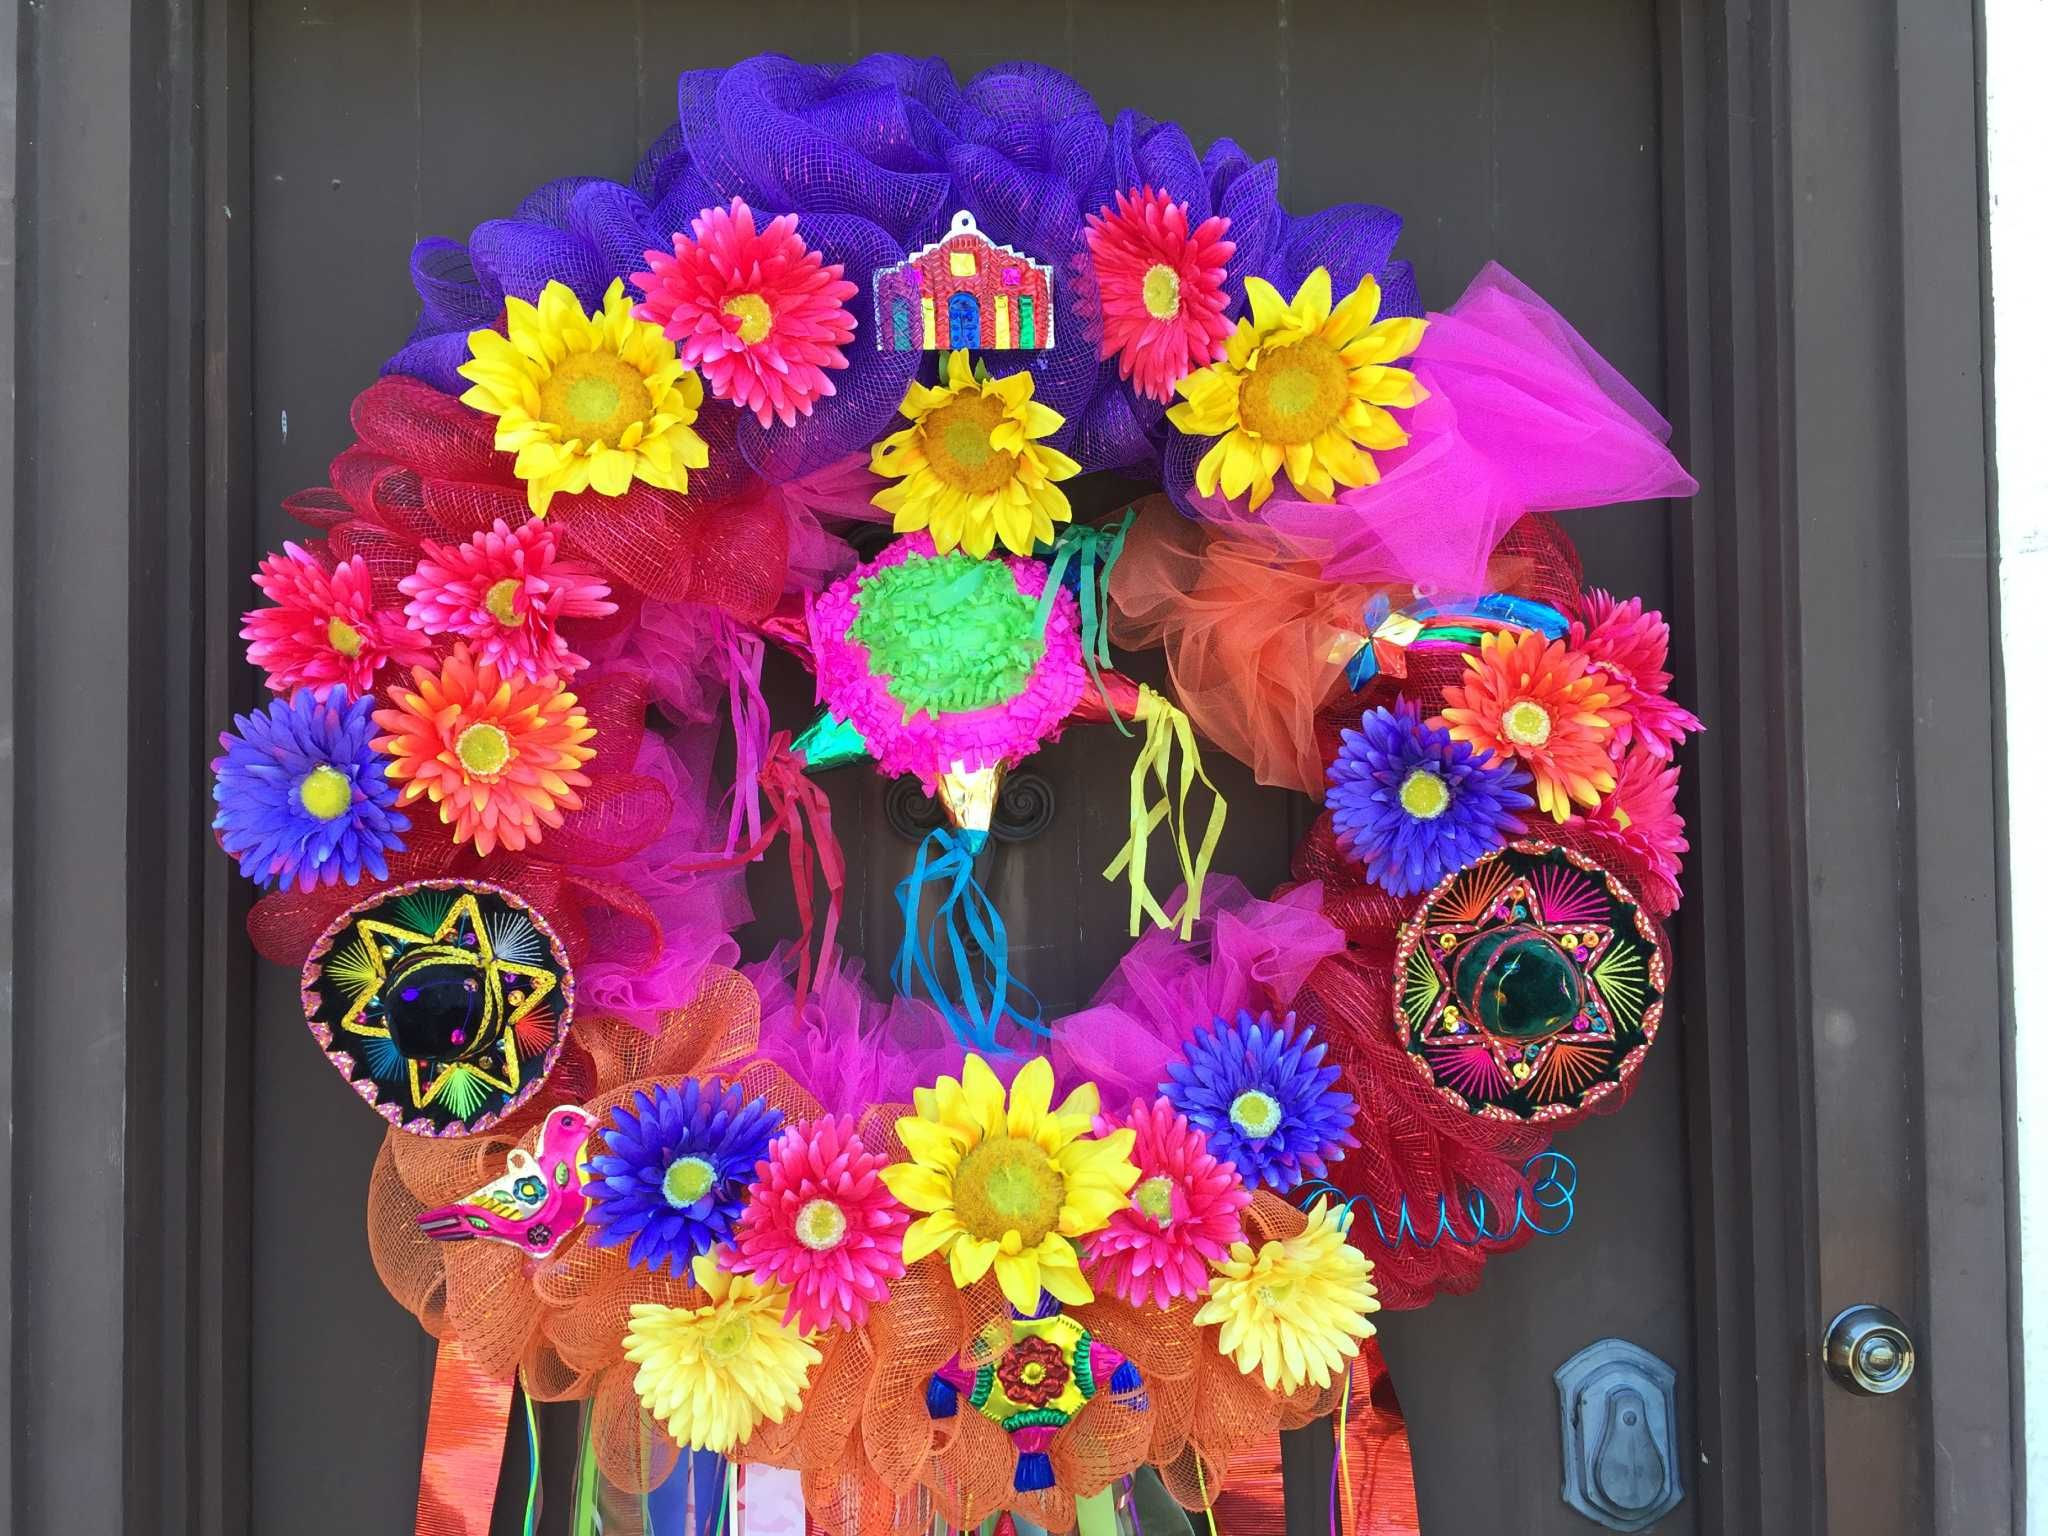 Diy Wreath Supplies Step By Step How To Make Your Own Fiesta Wreath Arts